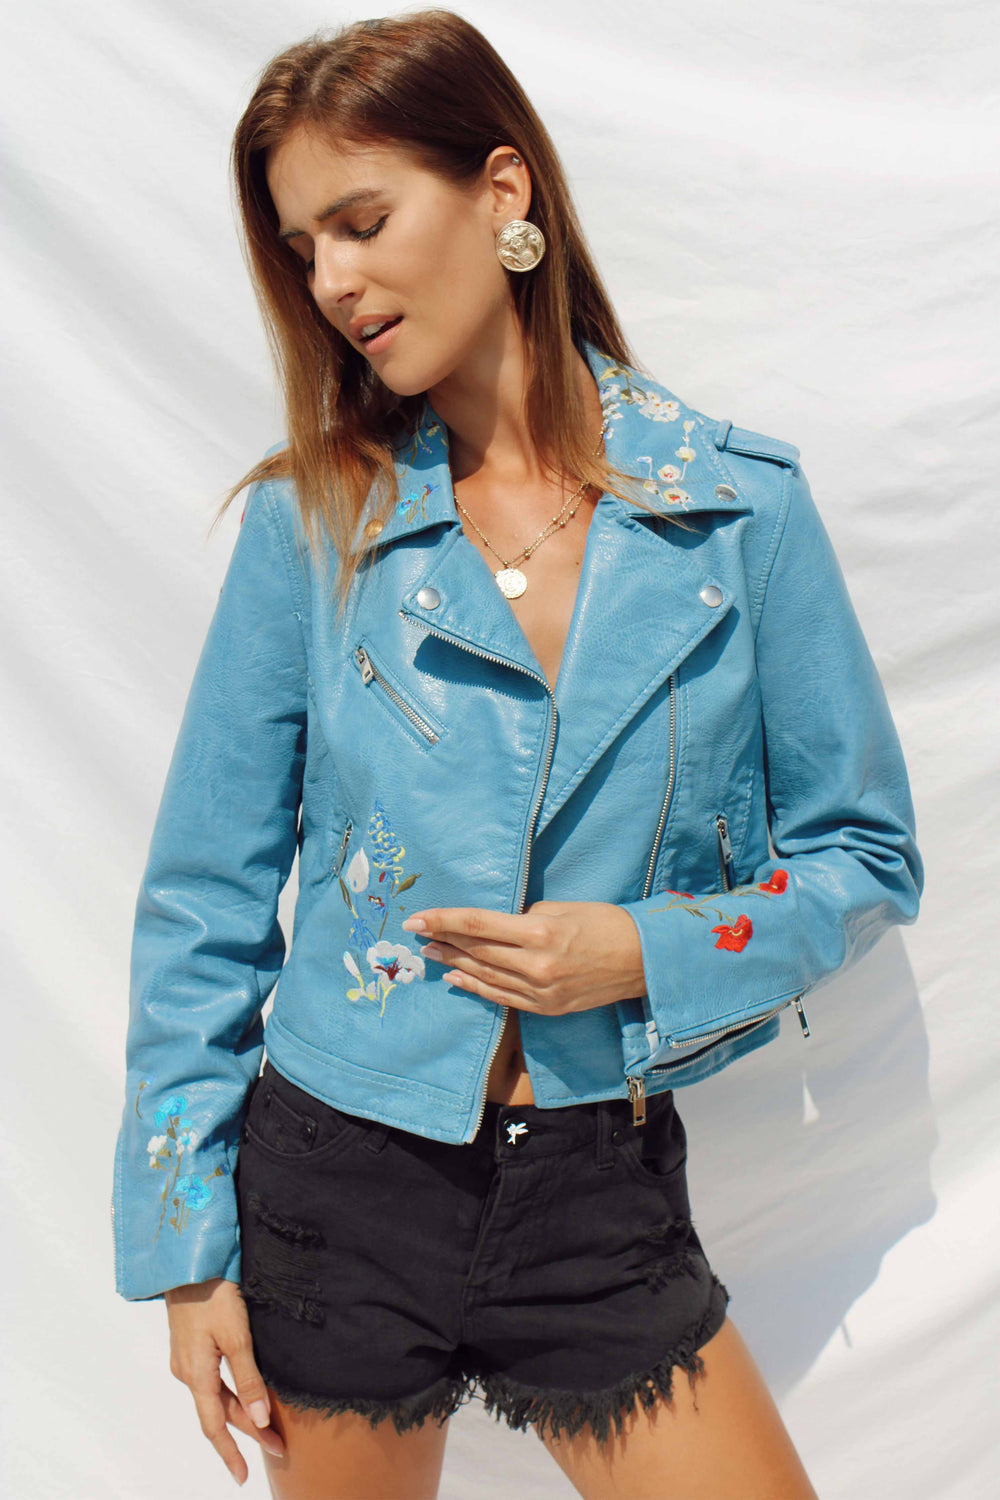 DIYA LEATHER JACKET | Women's Online Shopping | CHICLEFRIQUE  (1965845446745)